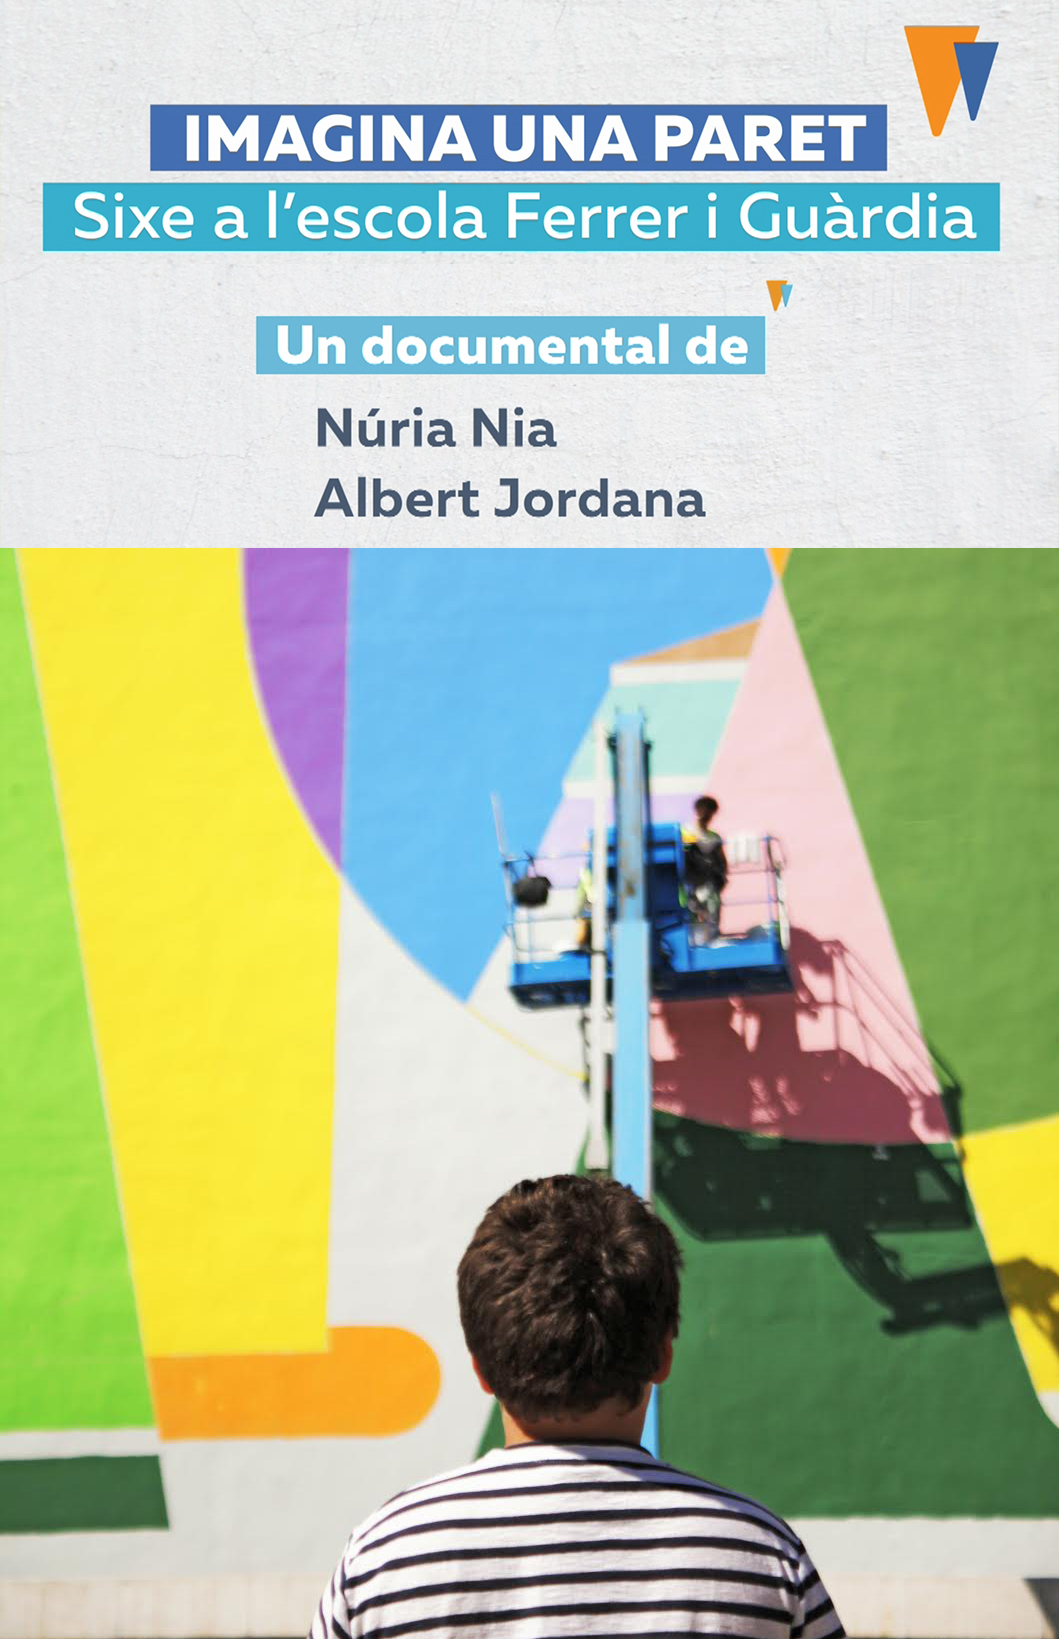 cartell imagina una paret documental sixe paredes núria nia